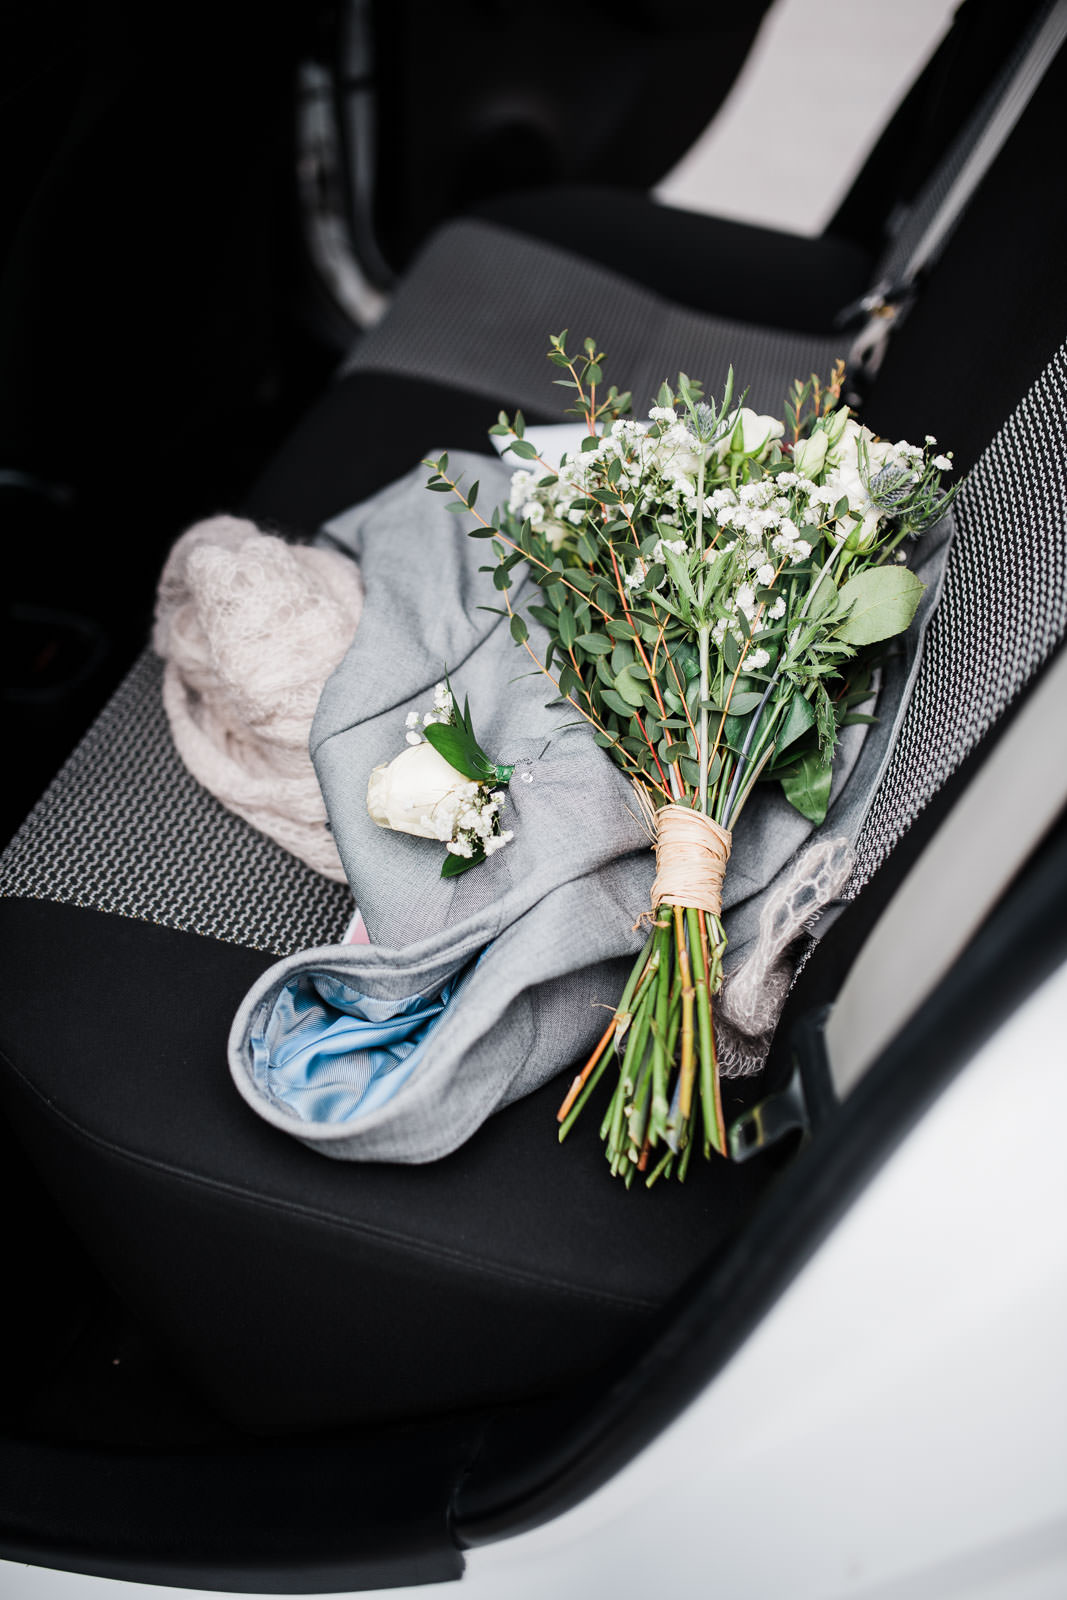 bouquet of flowers on rear car seat with blue jacket